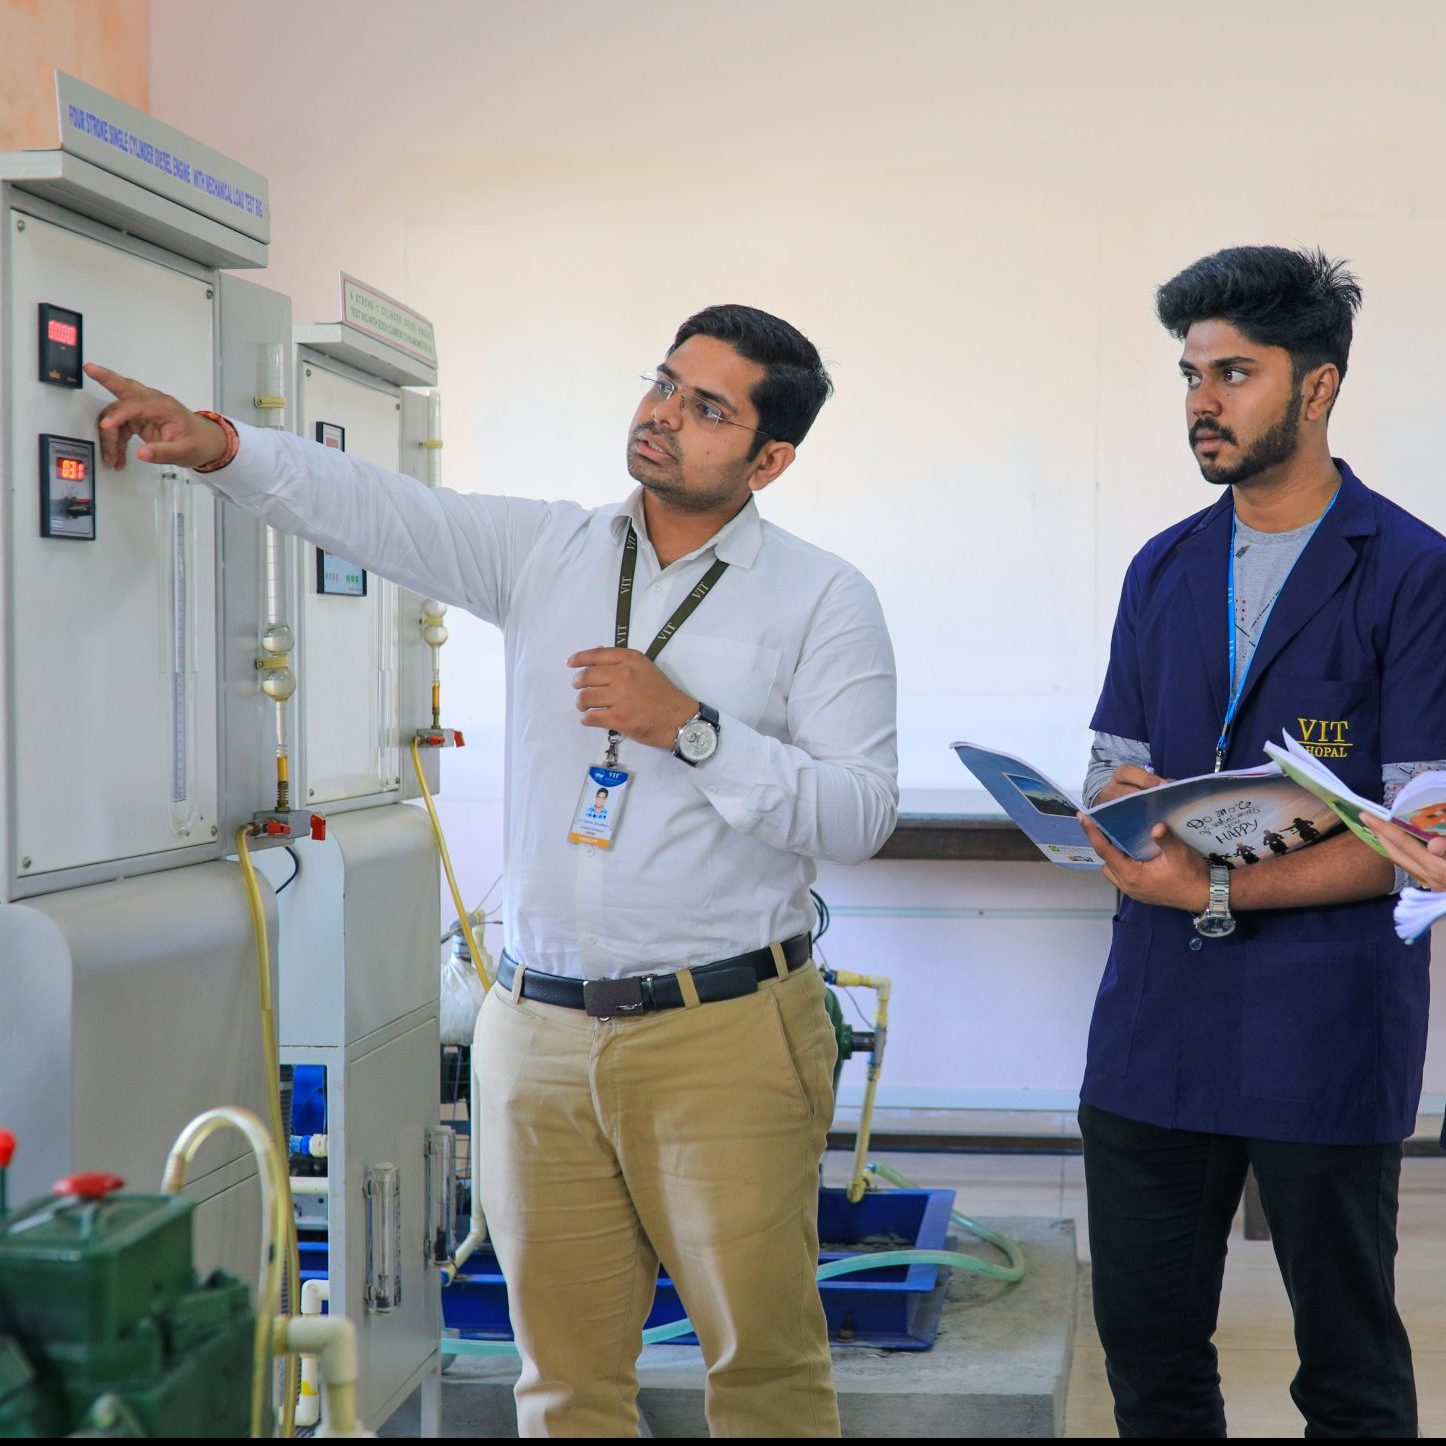 Mechanical lab VIT Bhopal  - Best University in Central India -  9-scaled-e1581404942105